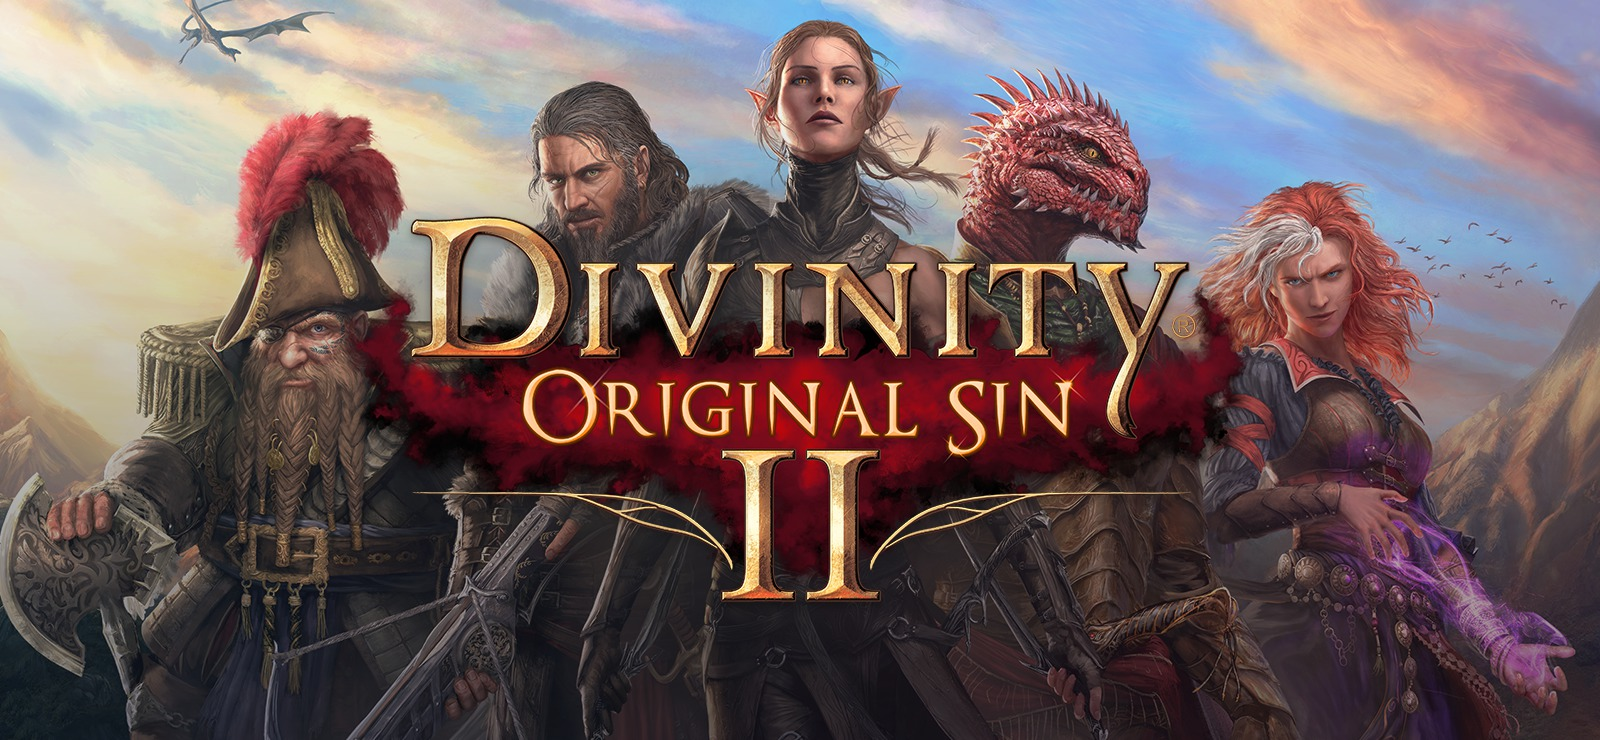 E3 Hands-on - Divinity: Original Sin 2 (Xbox One)